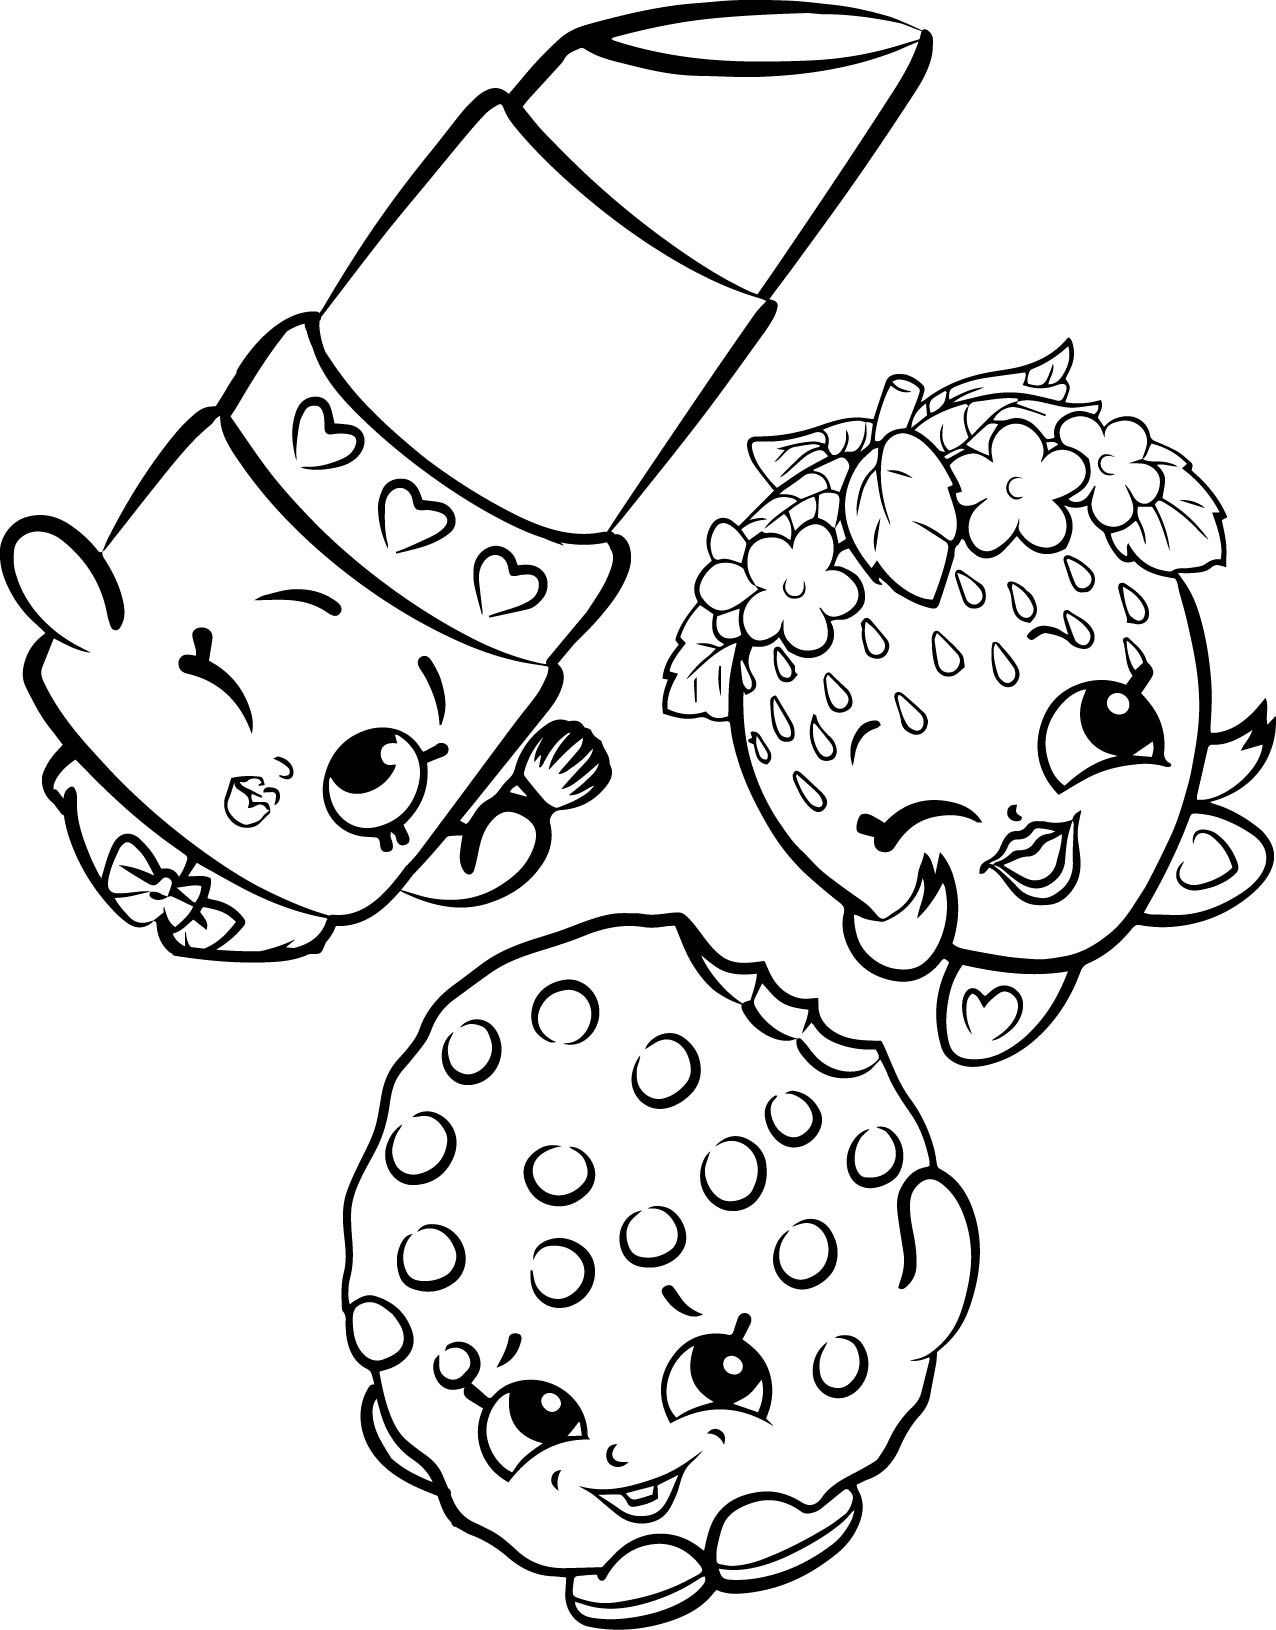 Shopkins coloring pages to print out - Your Mouth Will Water With These New Shopkins Coloring Pages But Don T Eat